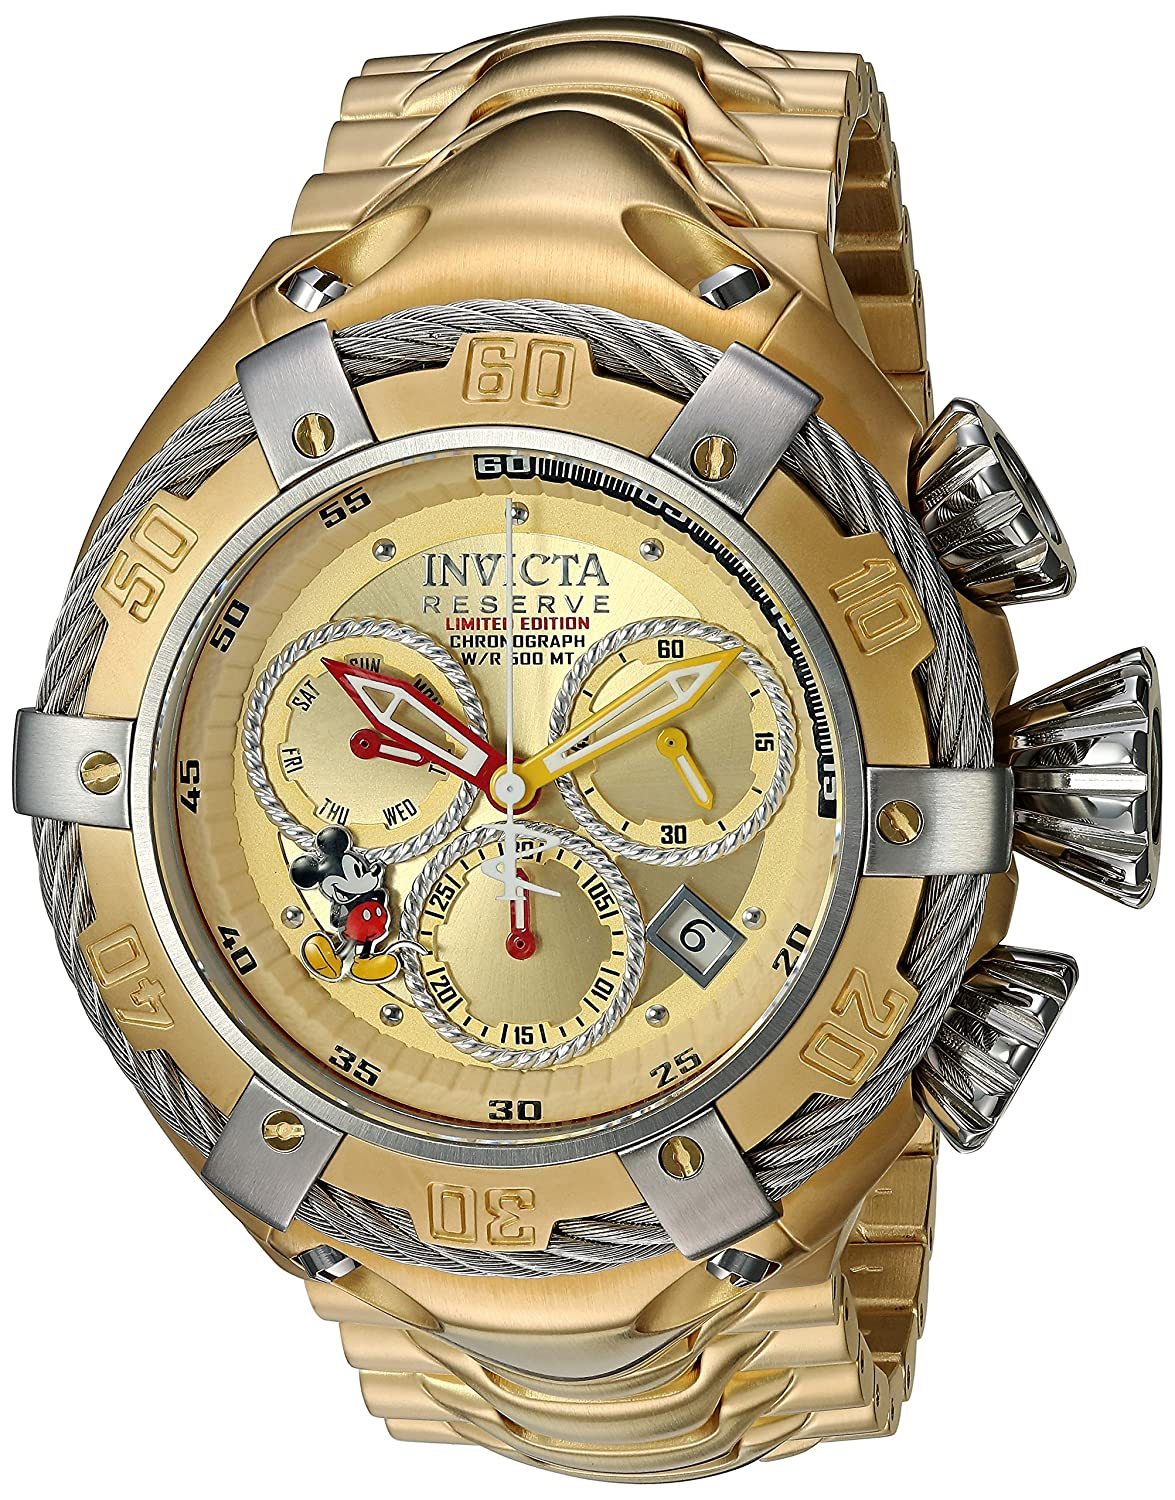 Invicta Men s Disney Limited Edition Quartz Watch with Stainless-Steel Strap, Gold, 29 Model 24659